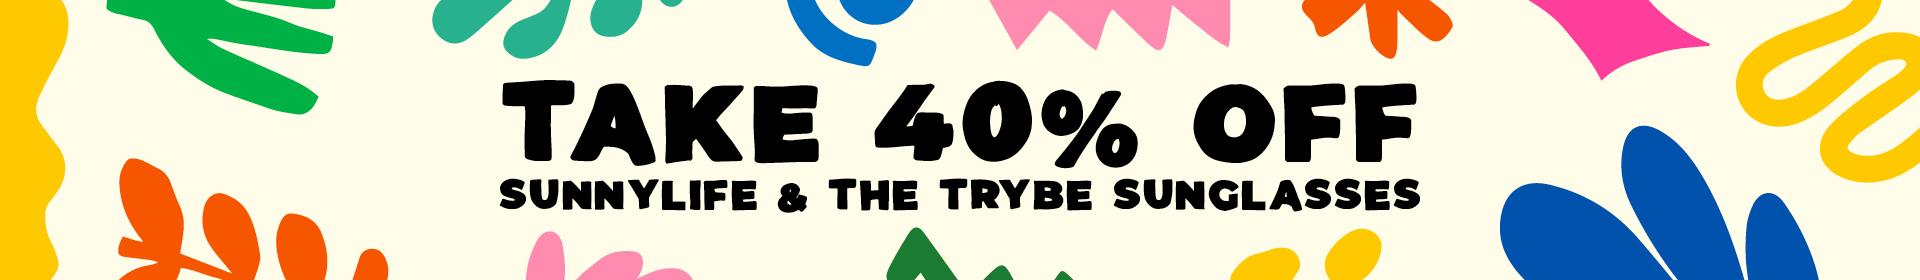 40% Off The Trybe Sunglasses